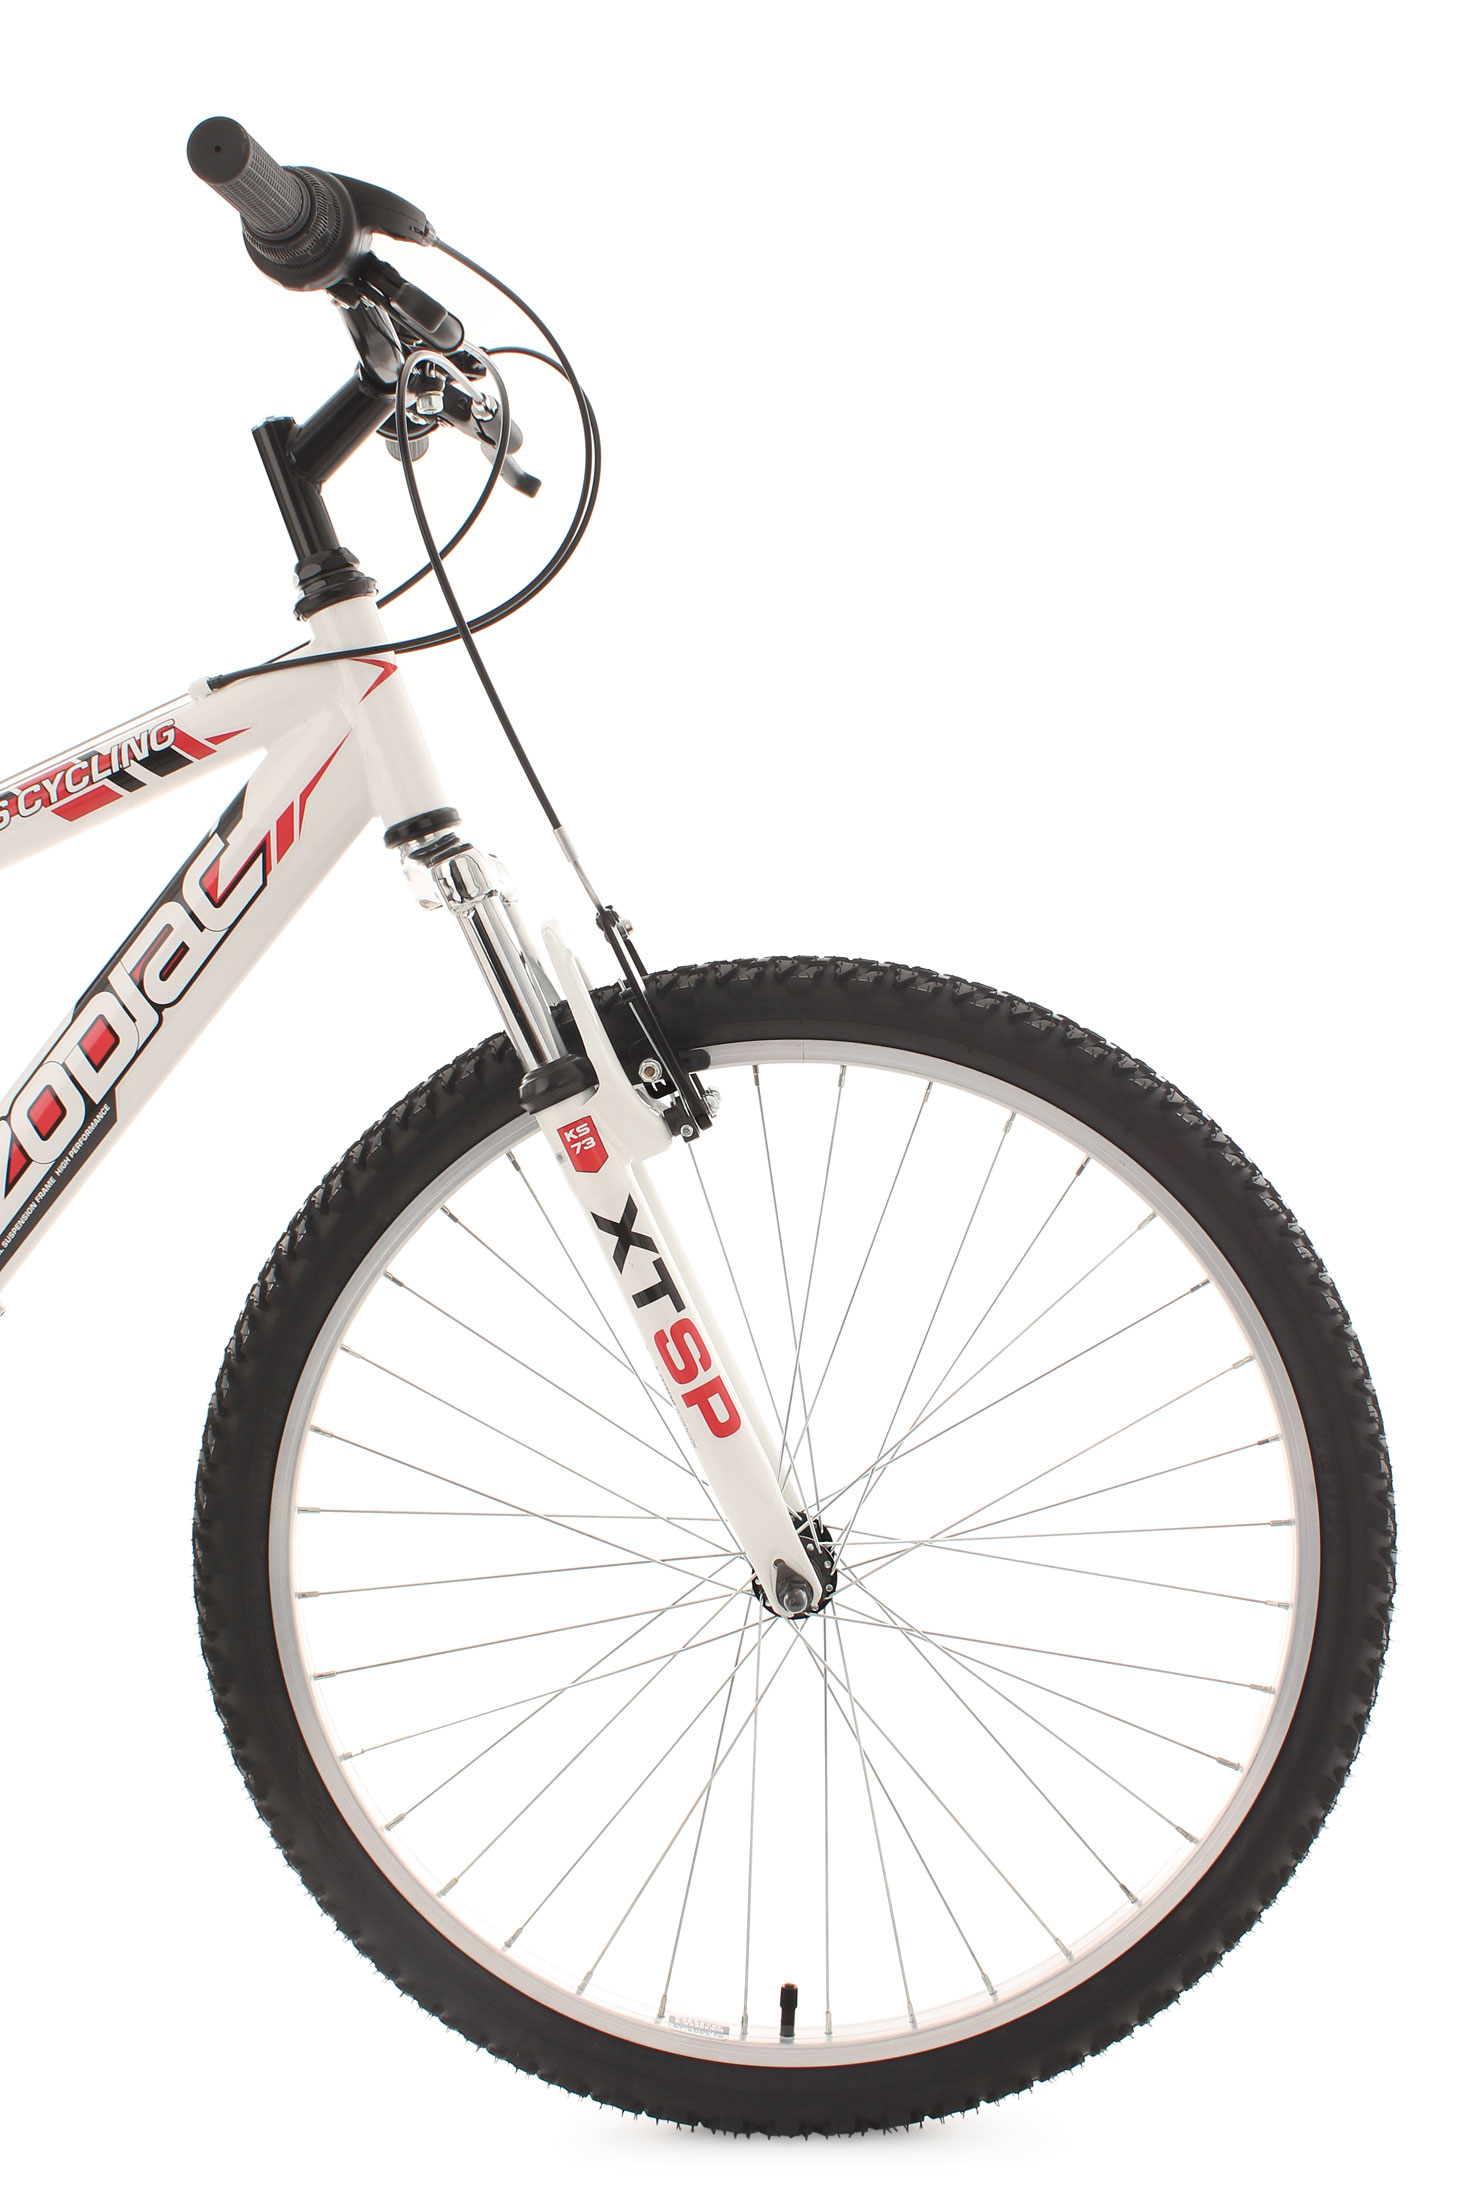 320M-KS-CYCLING-FULLY-MOUNTAINBIKE-ZODIAC-WEISS-ROT-Z-06